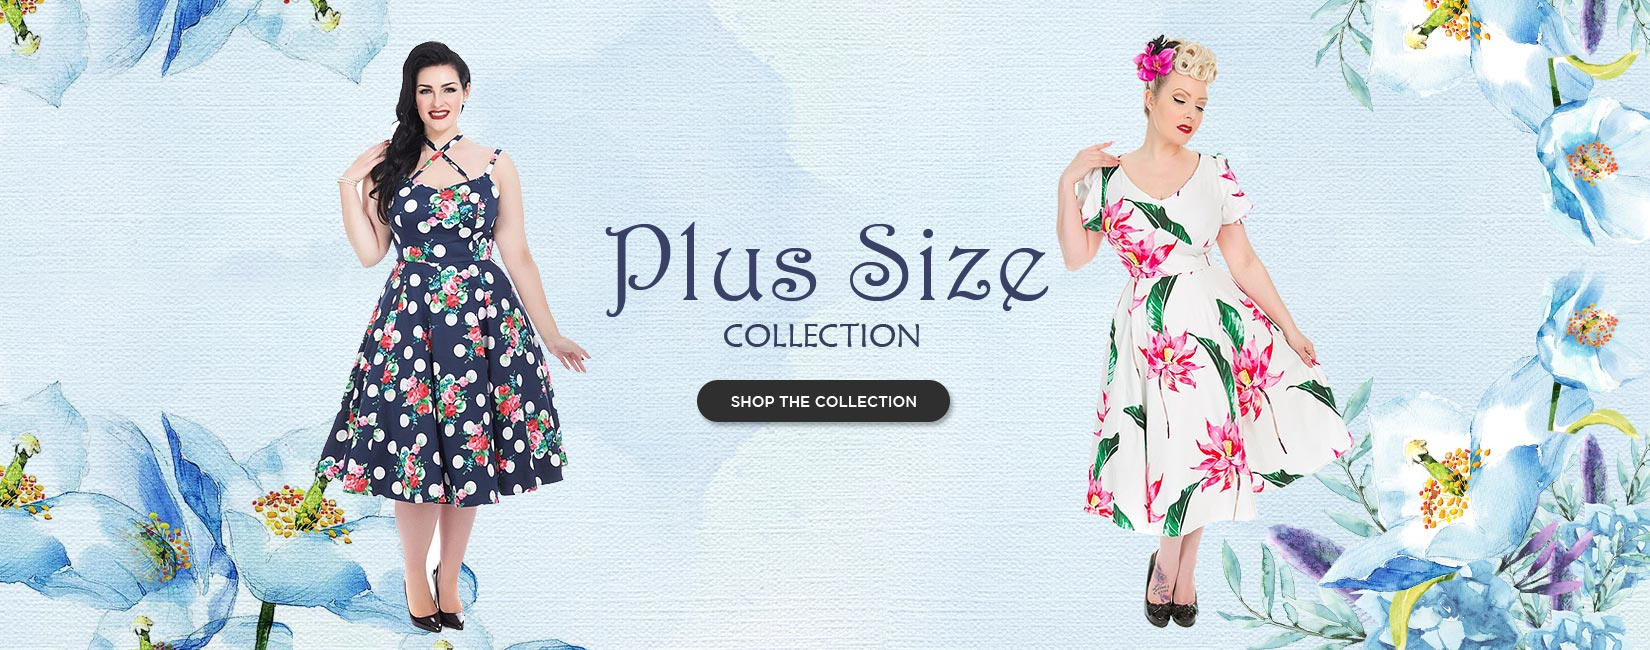 New Plus Size Banner